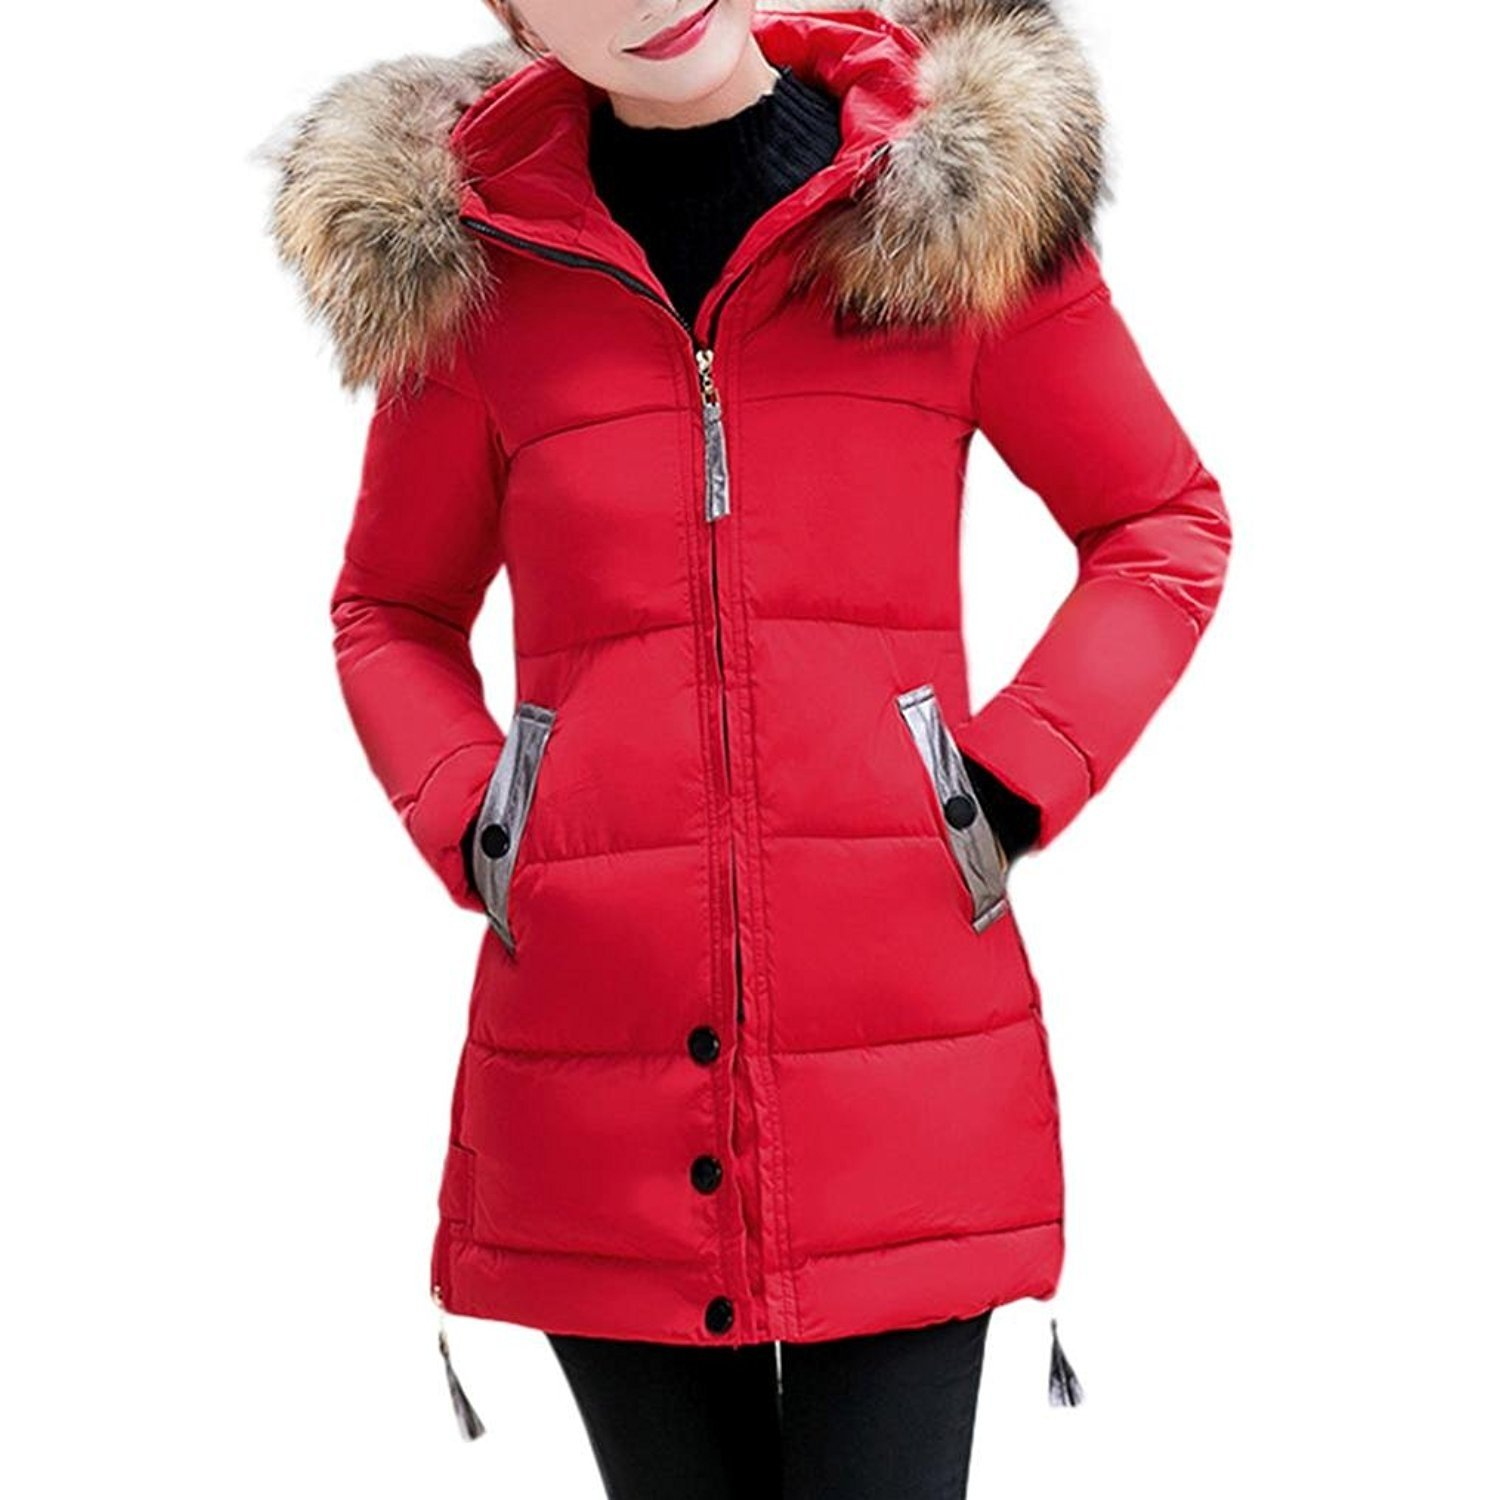 Bluestercool Women Winter Warm Slim Hooded Down Padded Long Jacket Coat, Ladies Parka Outwear